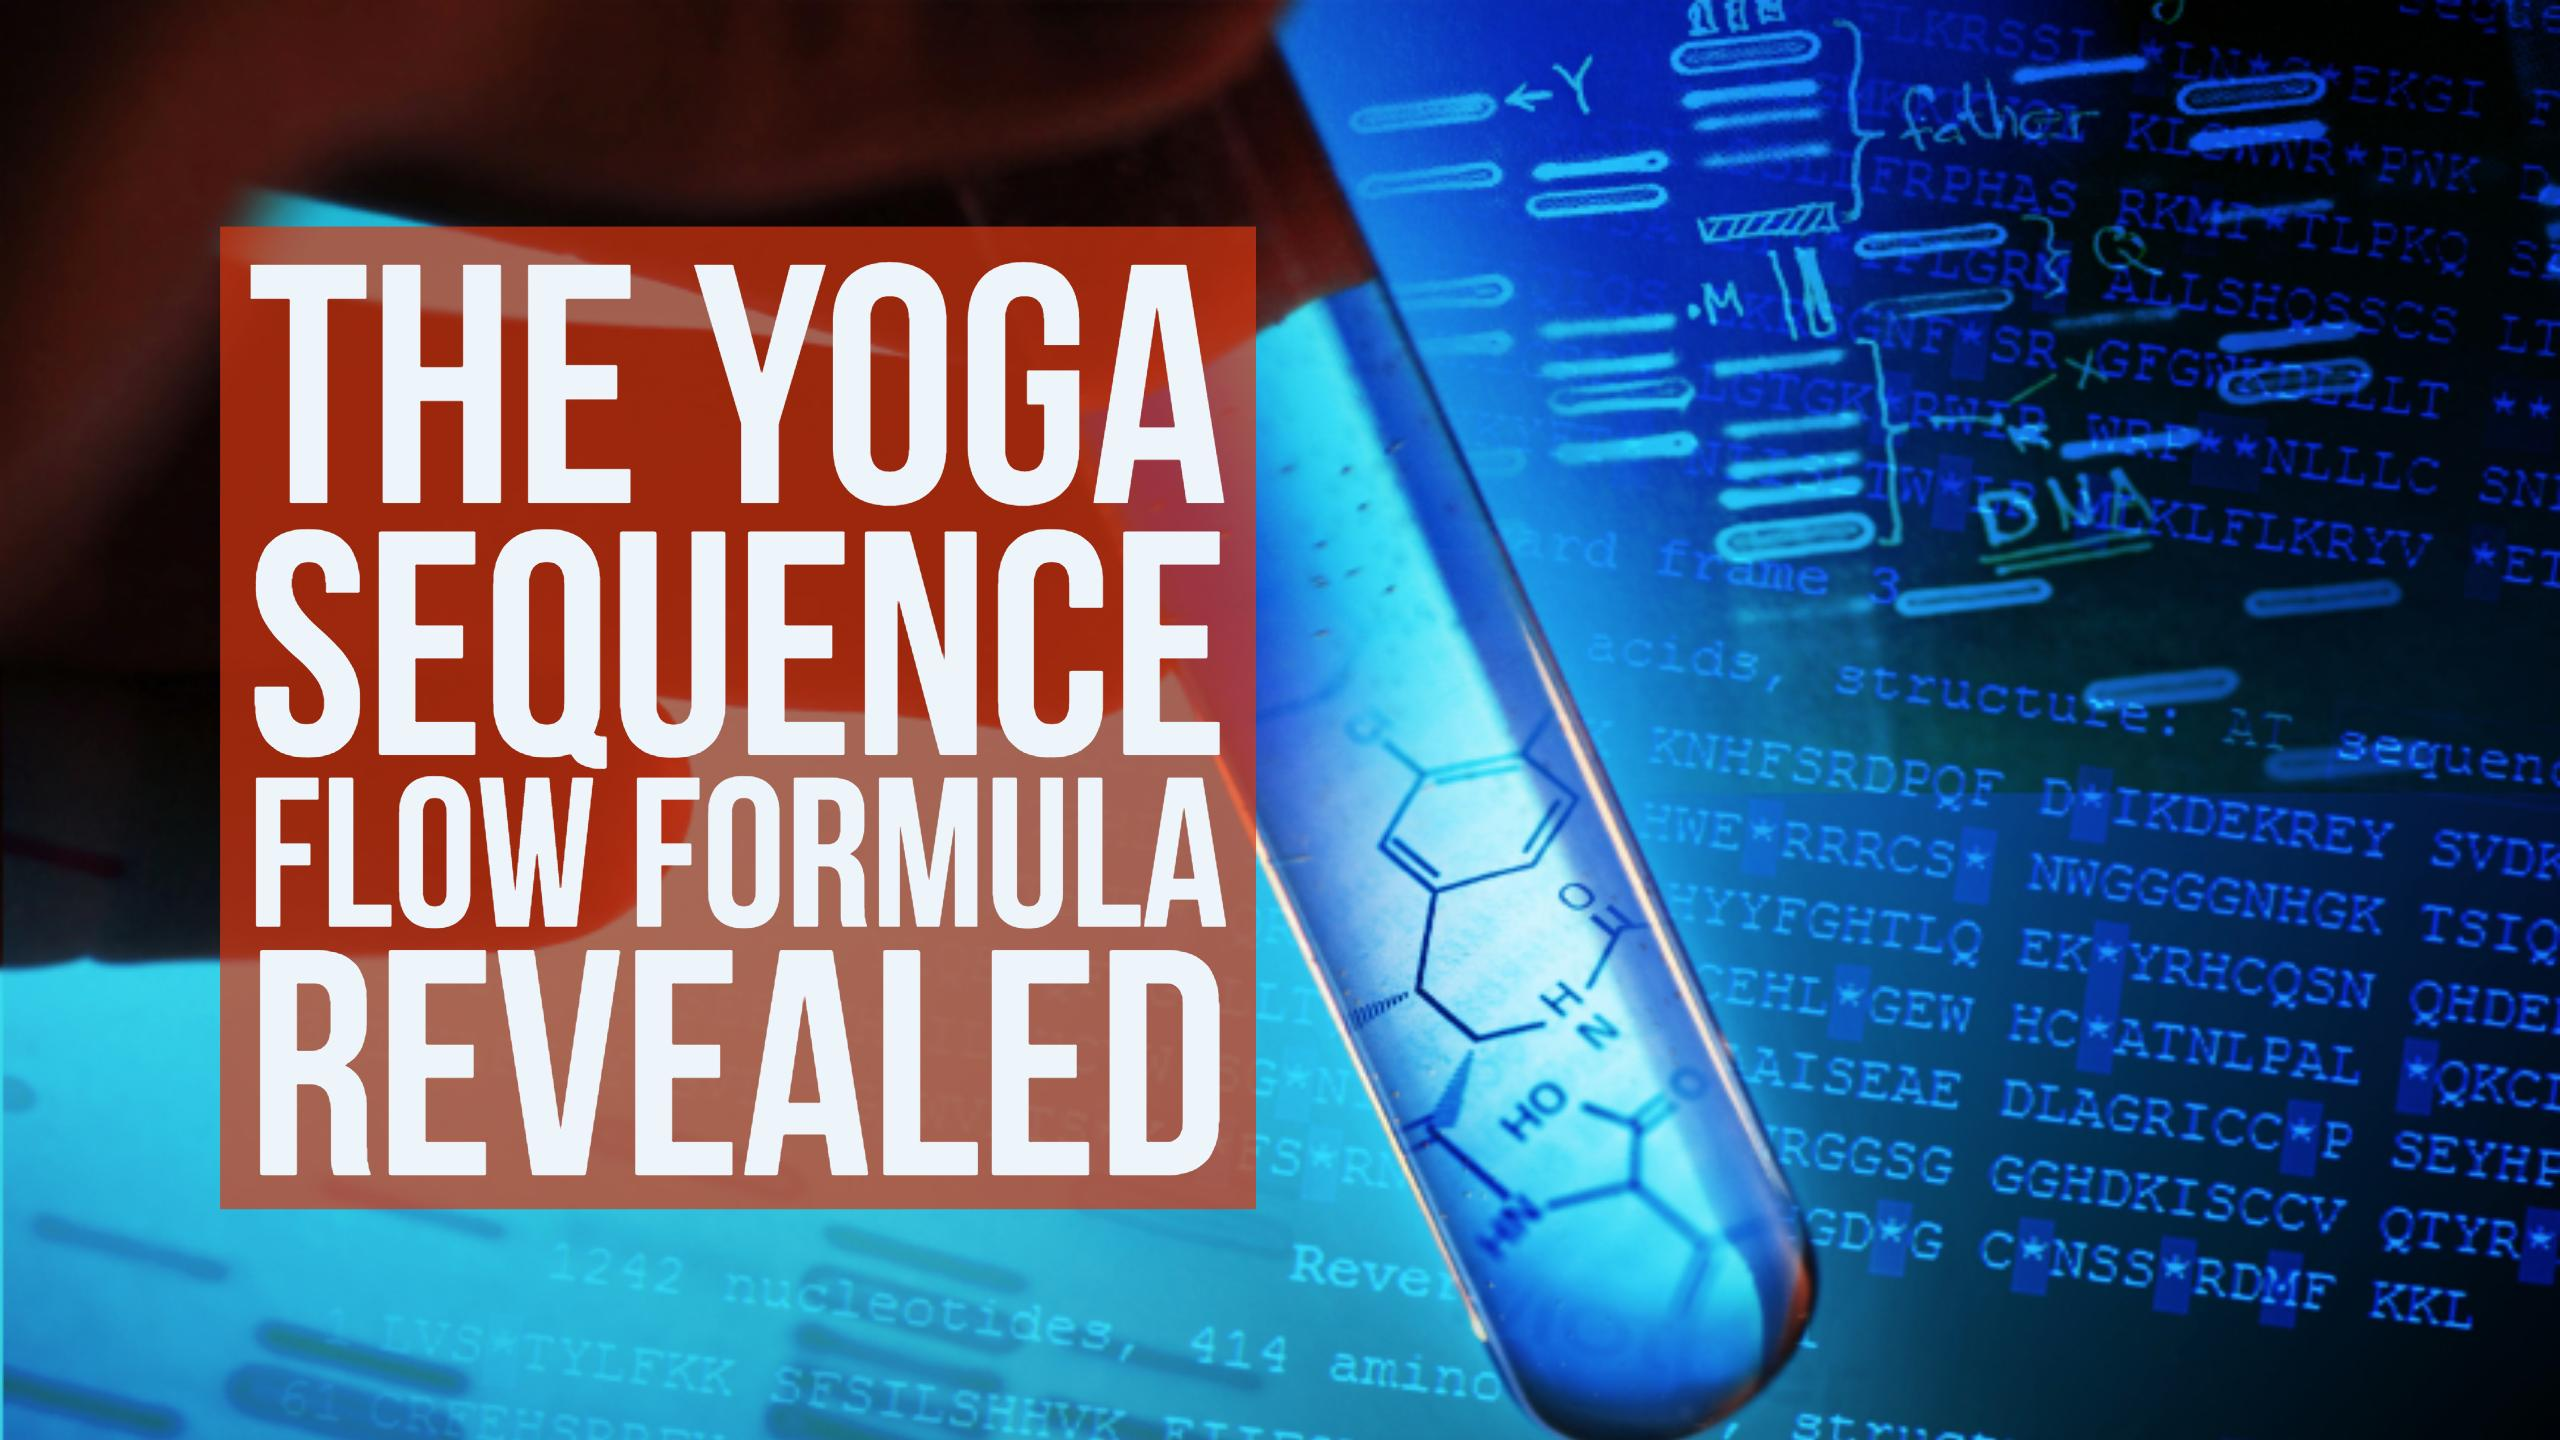 Discover How To Make Yoga Sequences Flow Naturally